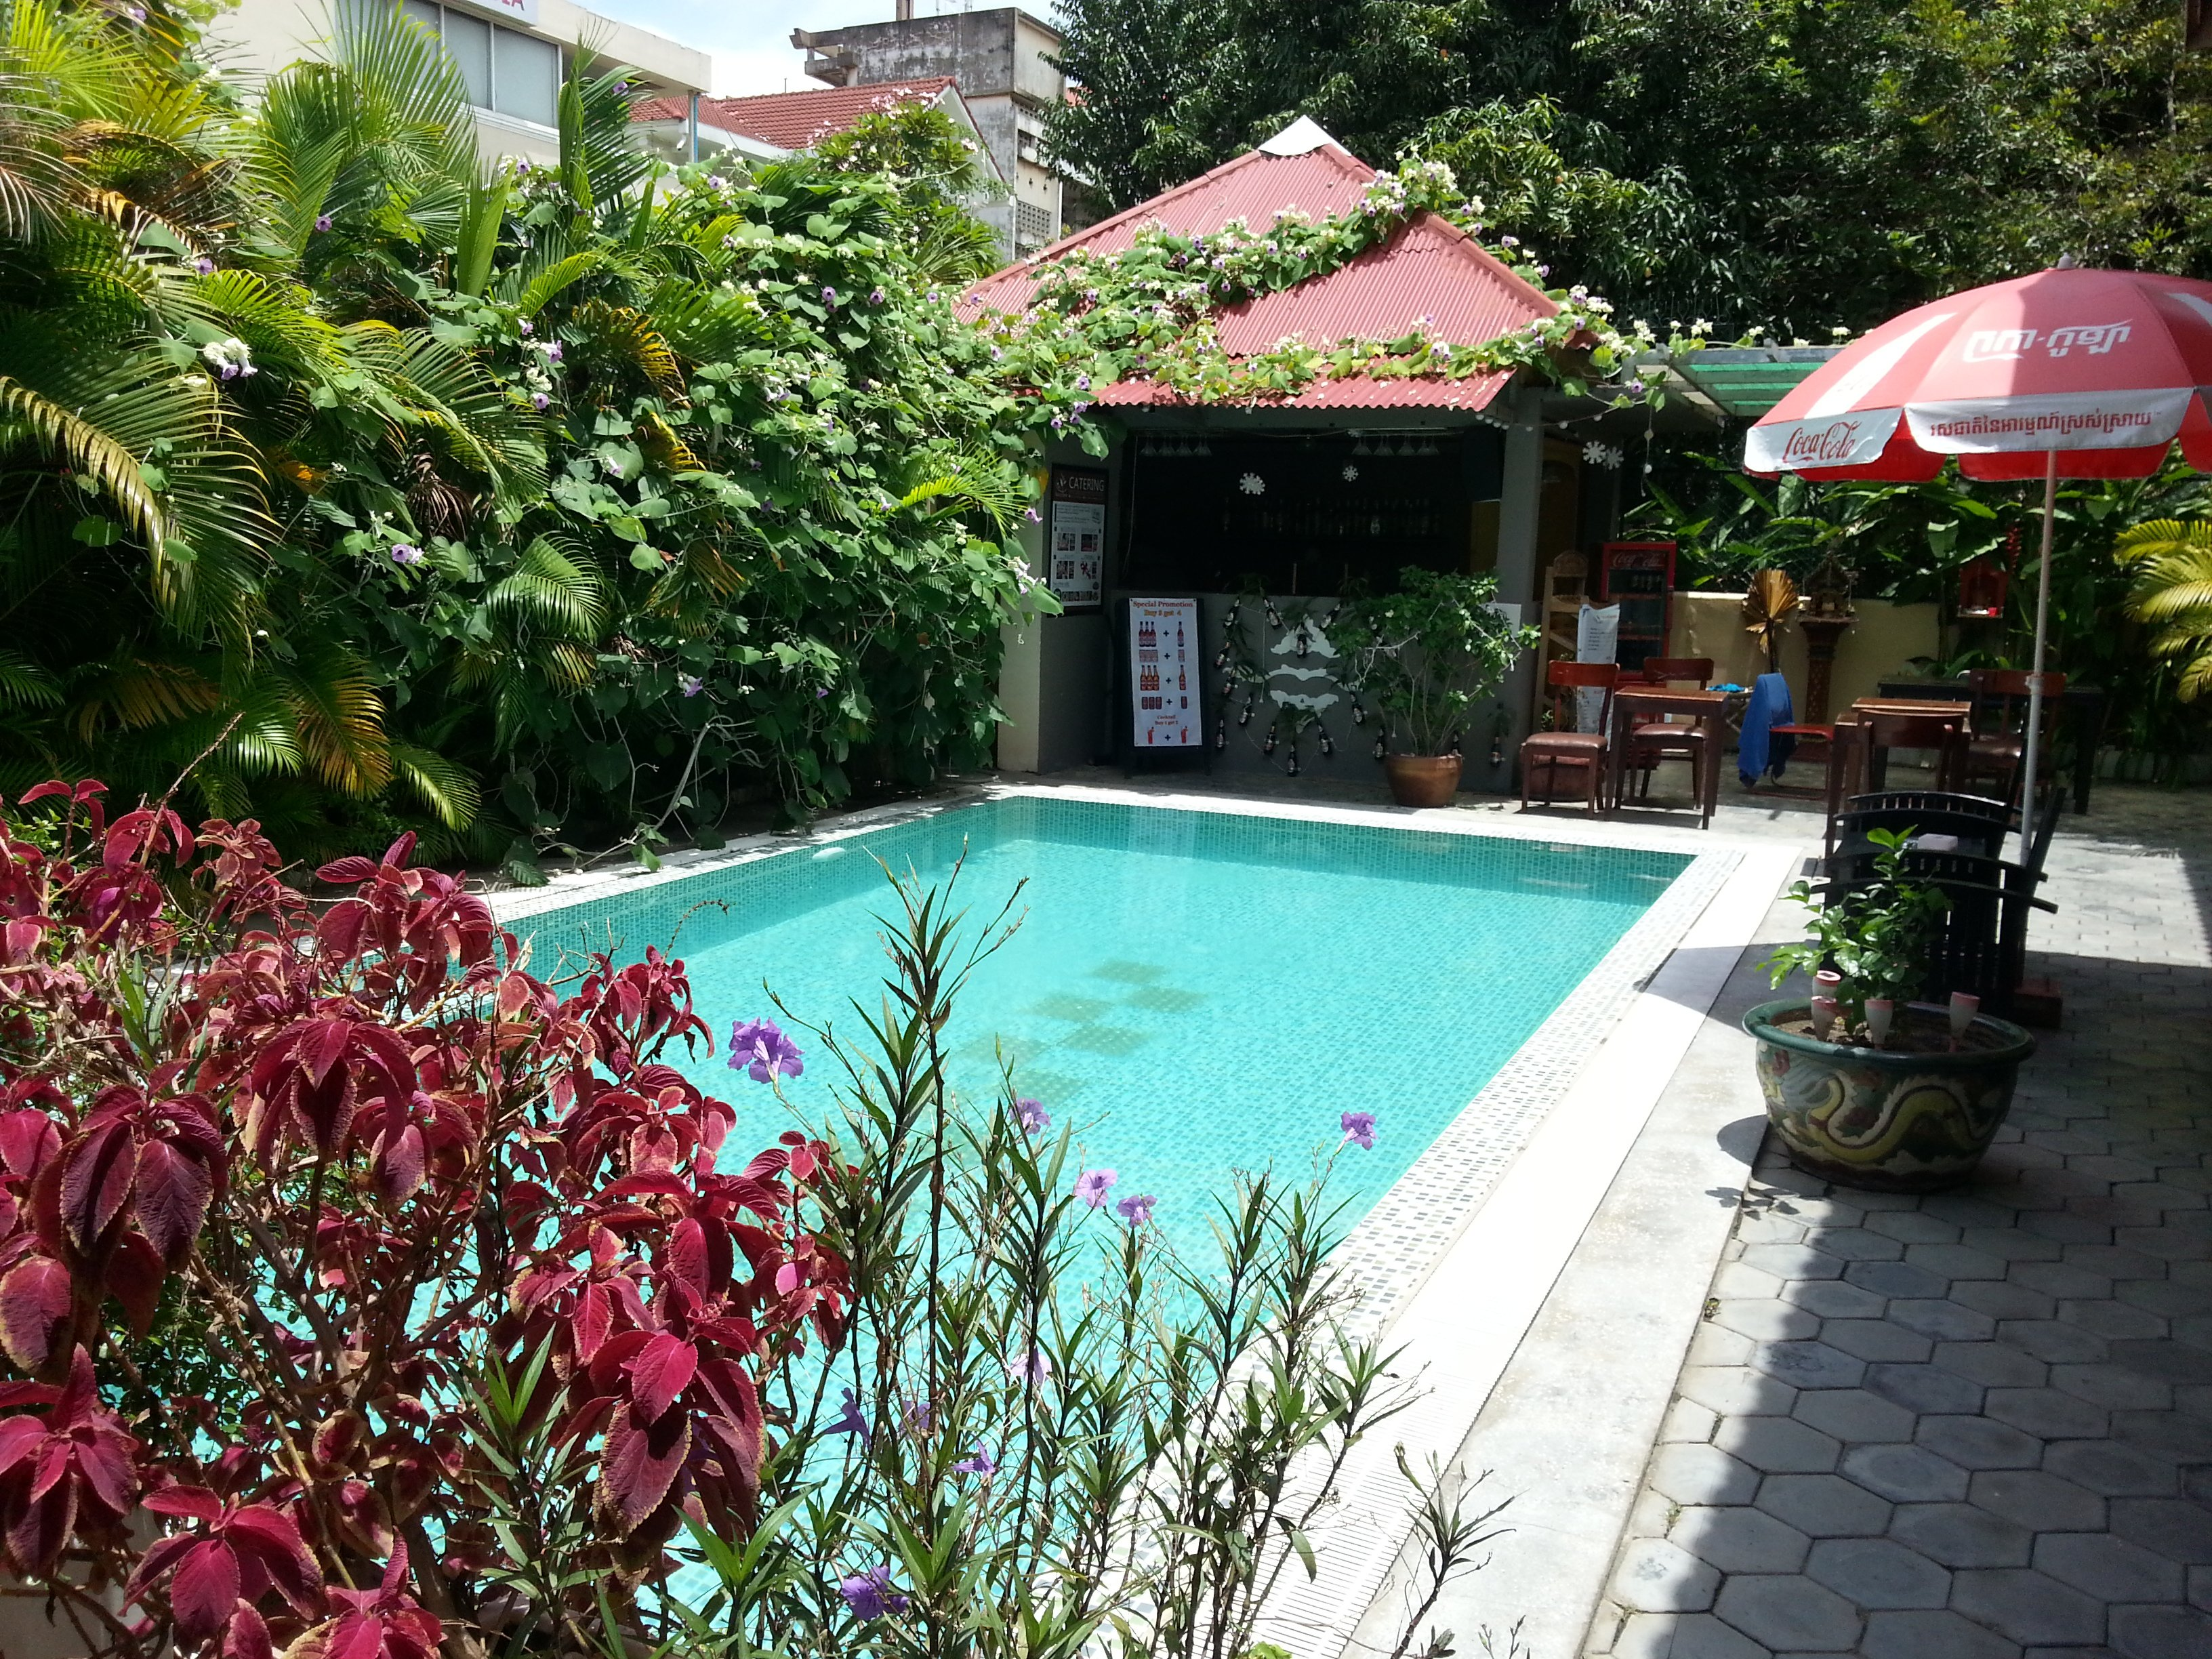 Pool and bar area at the Succo Gene Palace Boutique Hotel